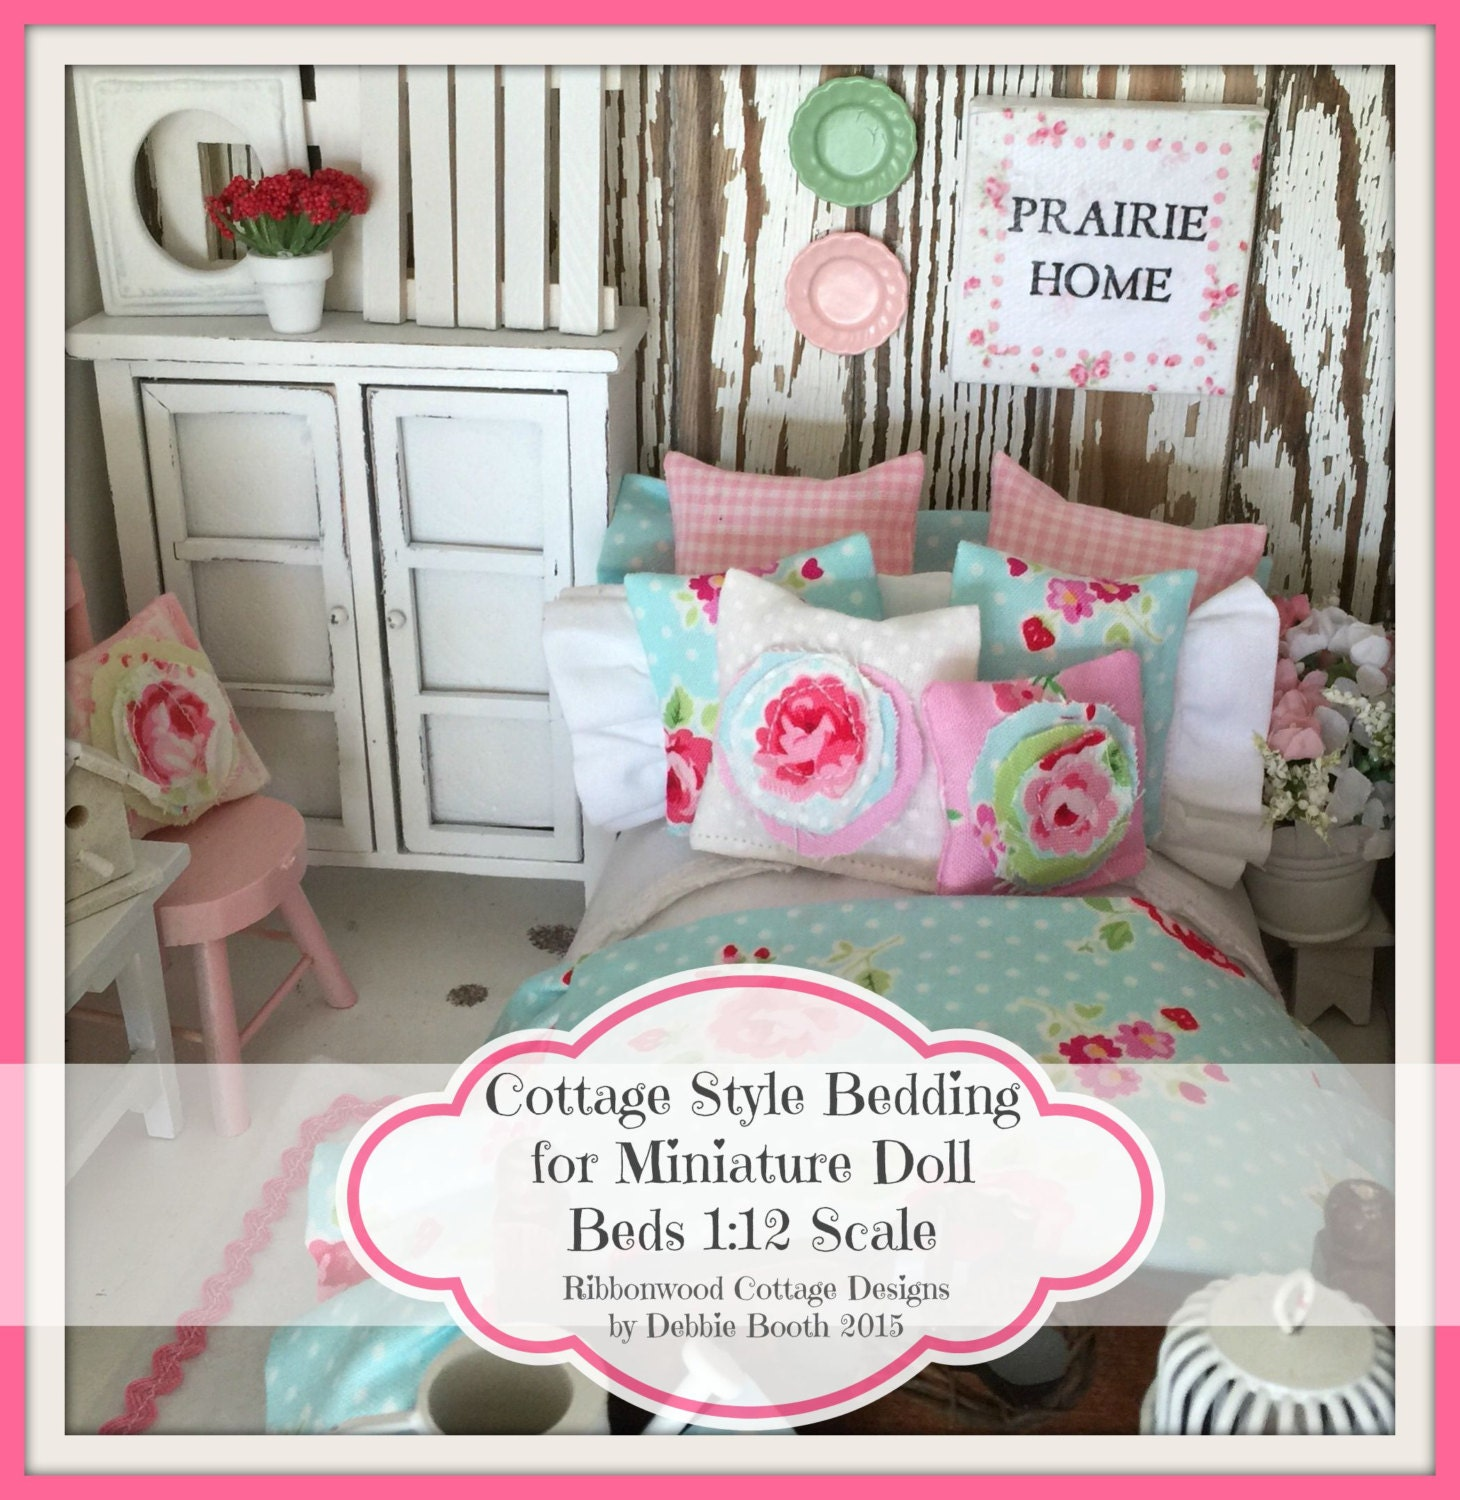 Sewing pattern miniature cottage style bedding for miniature doll sewing pattern miniature cottage style bedding for miniature doll beds 112 scale pattern ebook 42 color pages fandeluxe Gallery